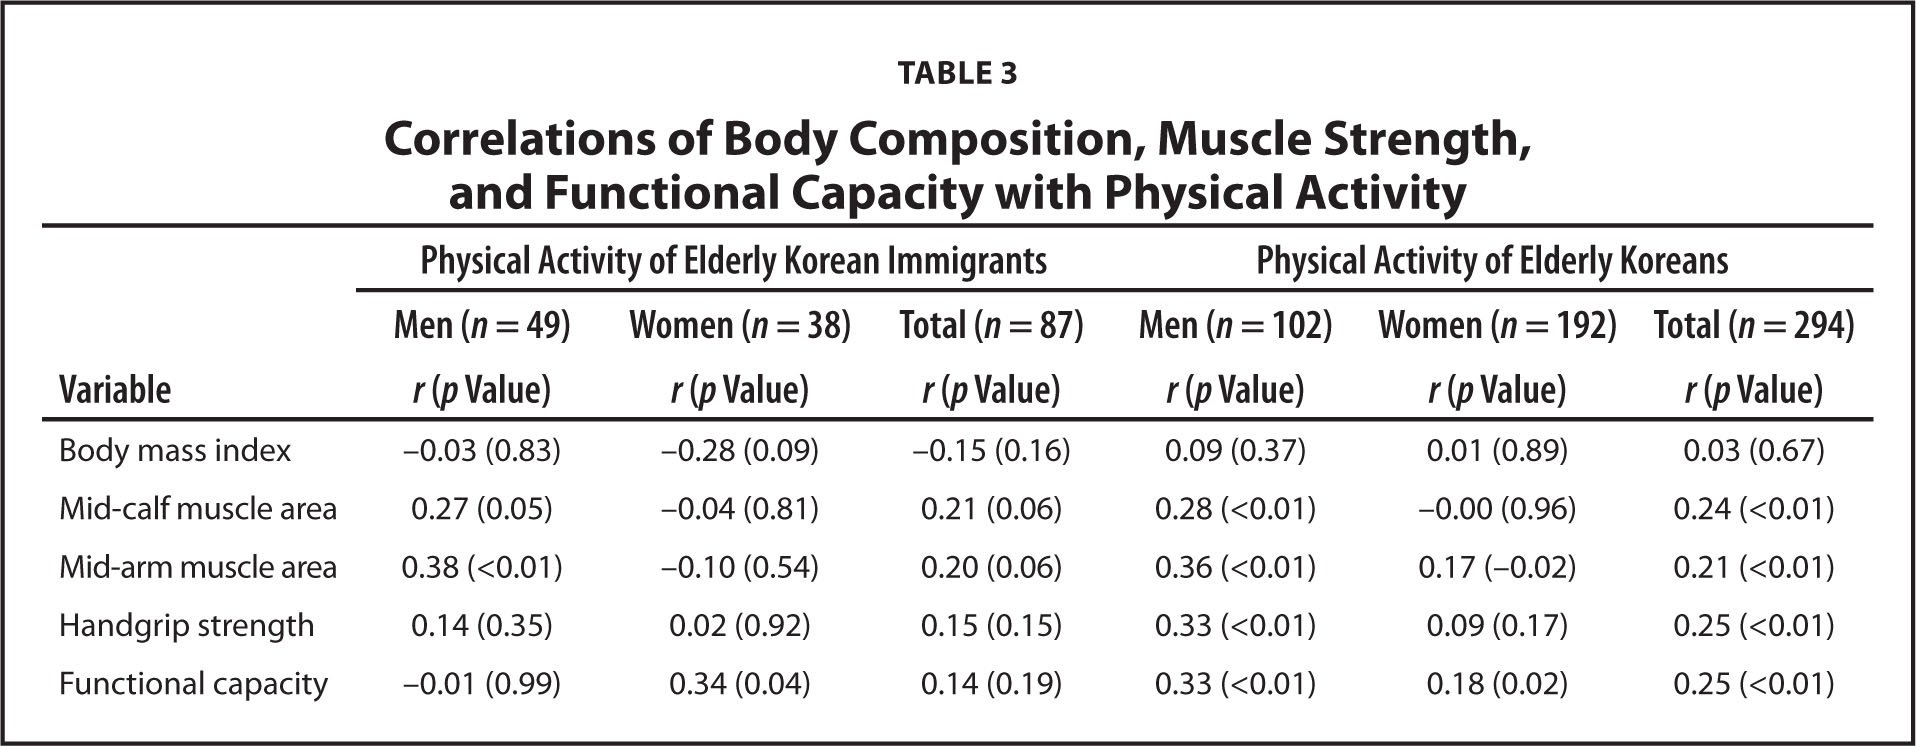 Correlations of Body Composition, Muscle Strength, and Functional Capacity with Physical Activity